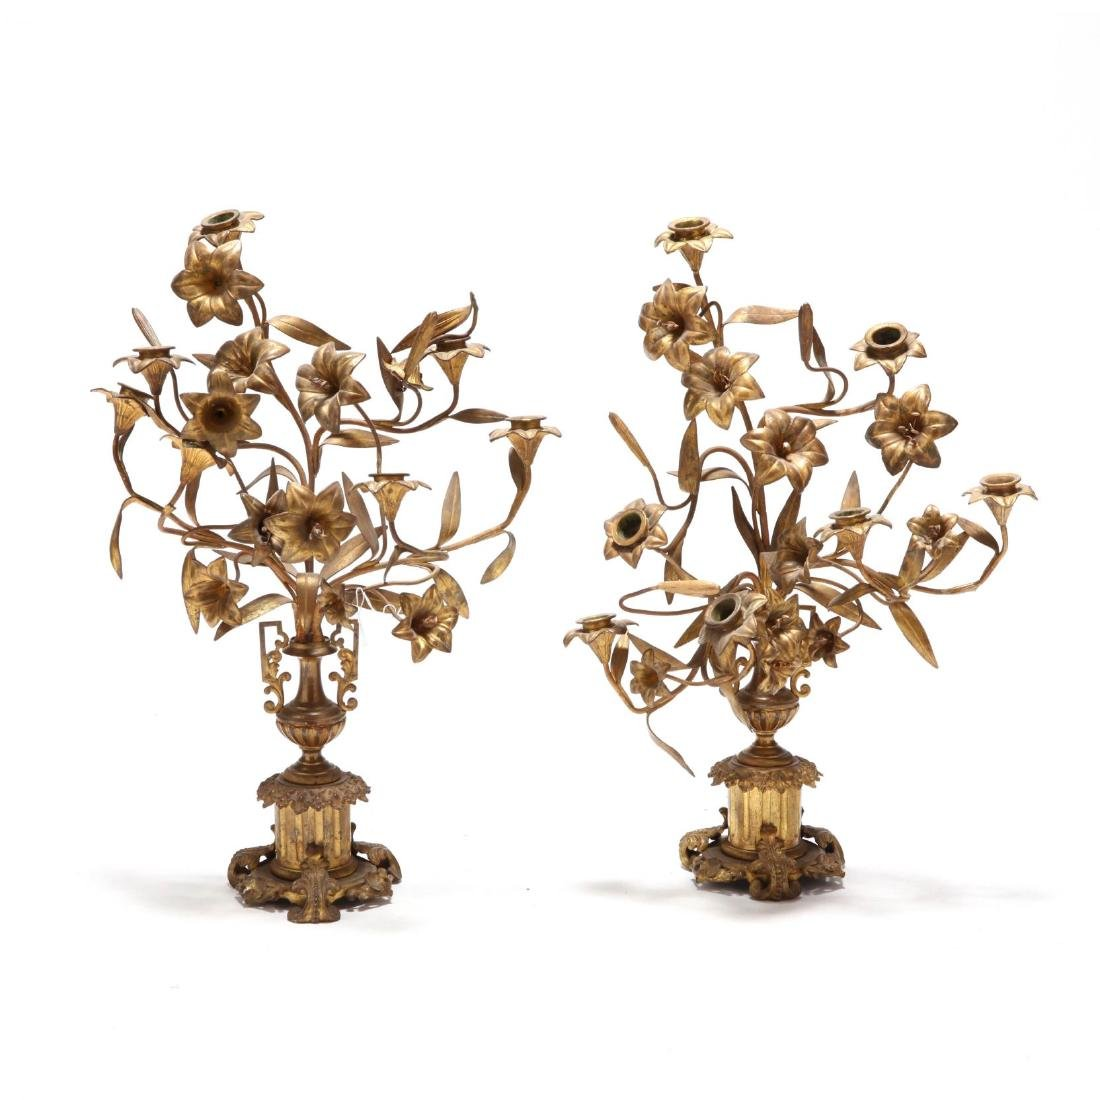 A Pair of French Gilt Bronze Candelabra